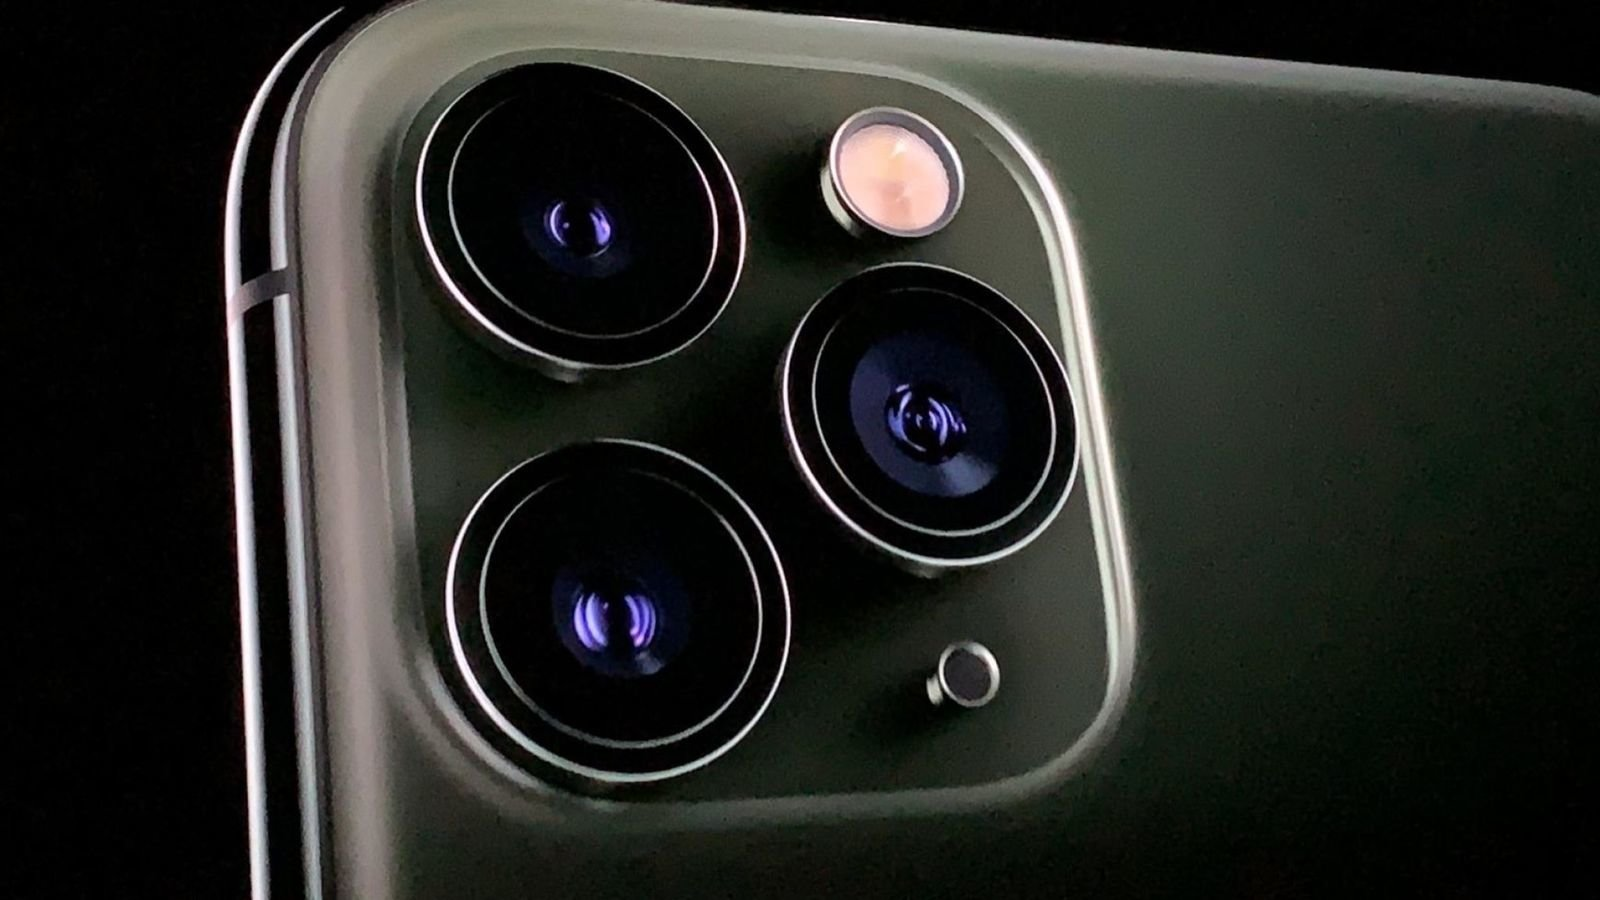 Apple iPhone 11 Pro camera reviews